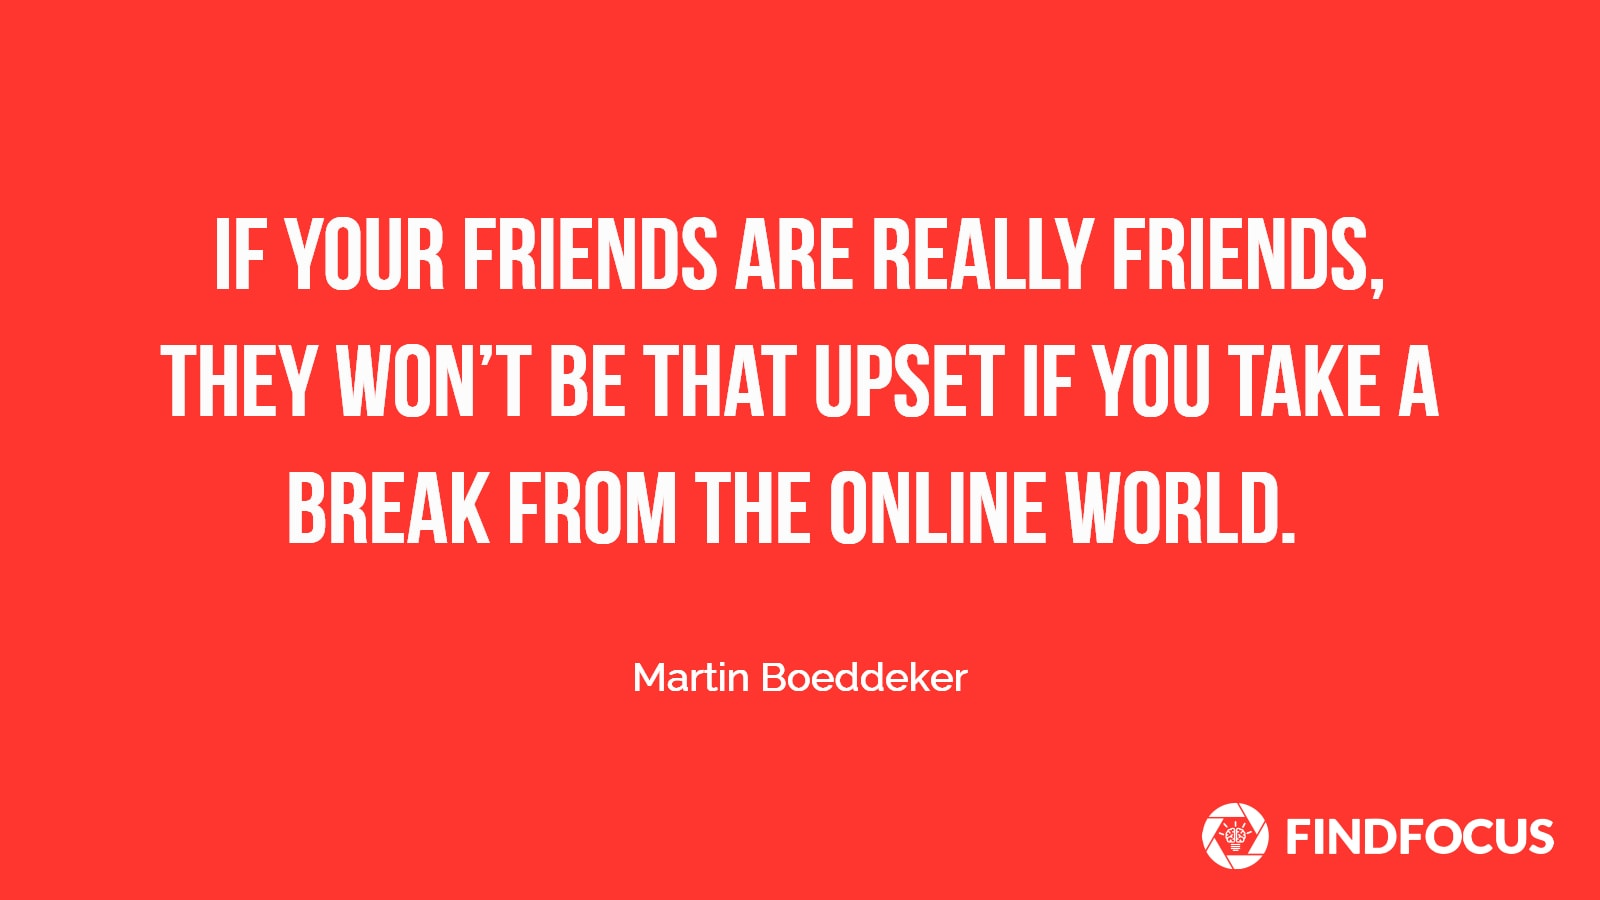 Don't be afraid to test your friendships.